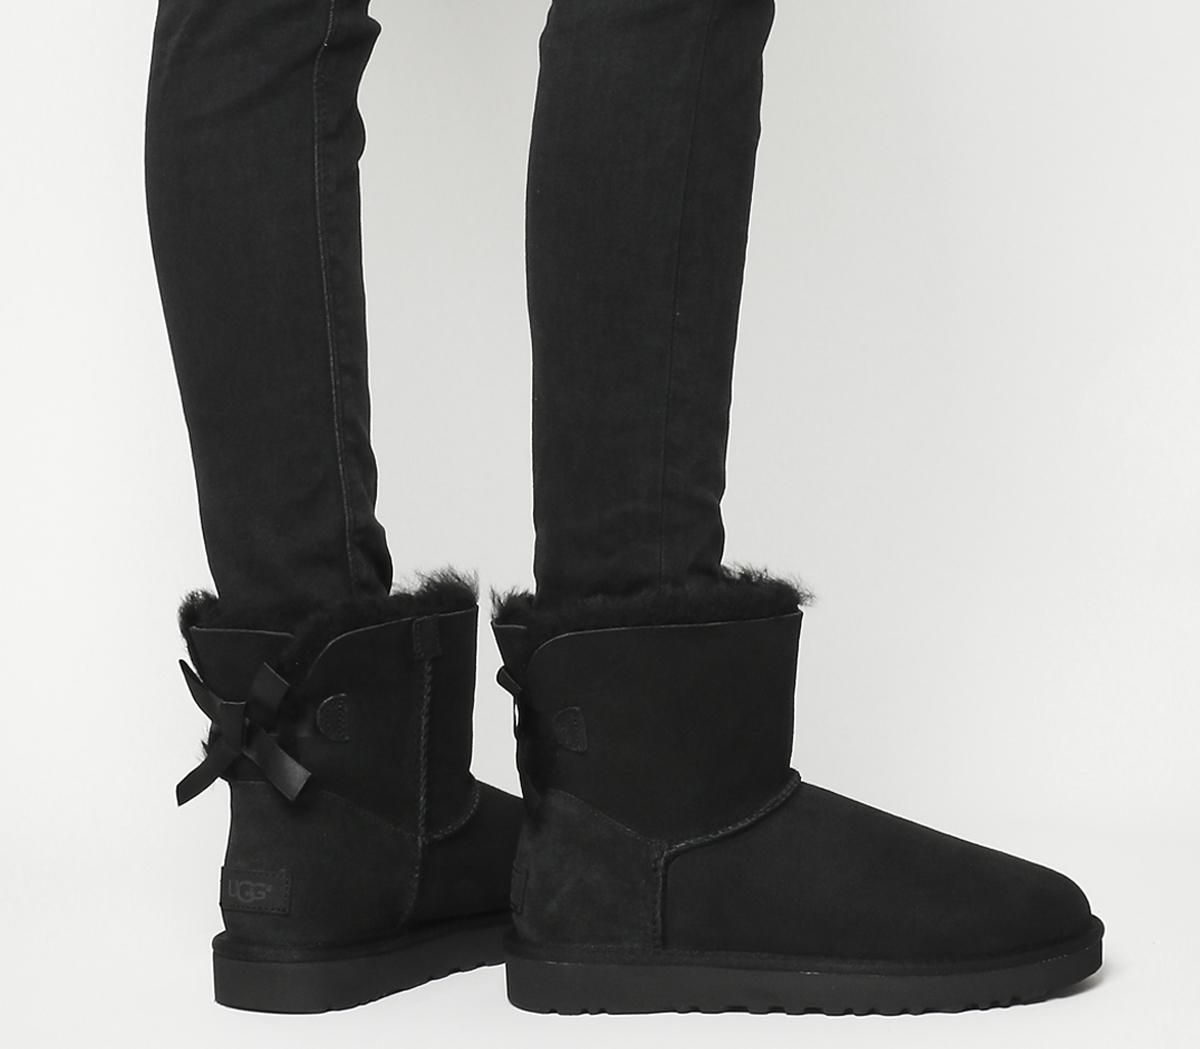 UGG Mini Bailey Bow Boots Black Suede